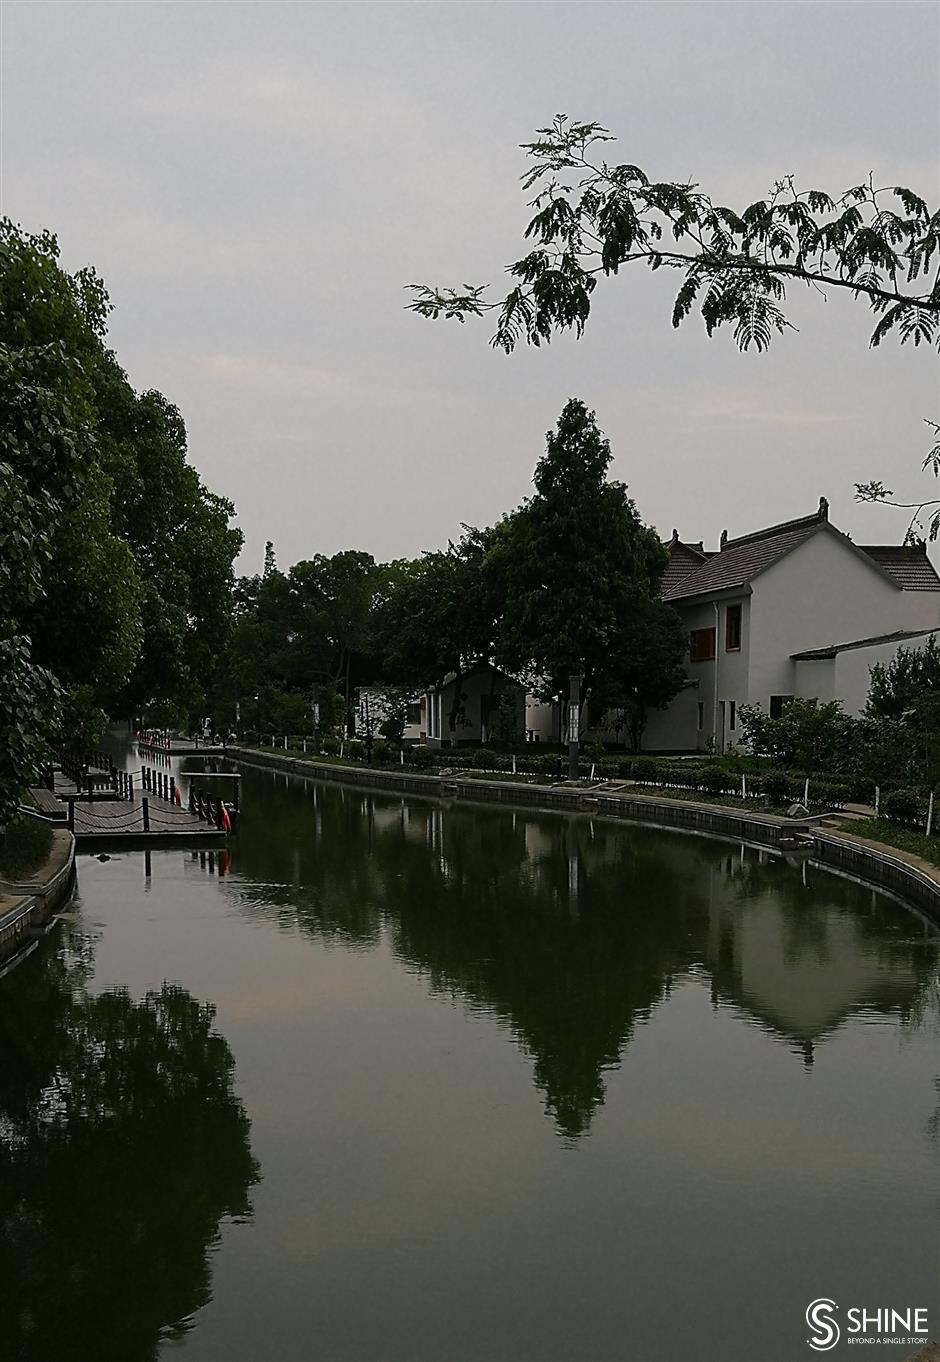 A world away from city life while still in Shanghai